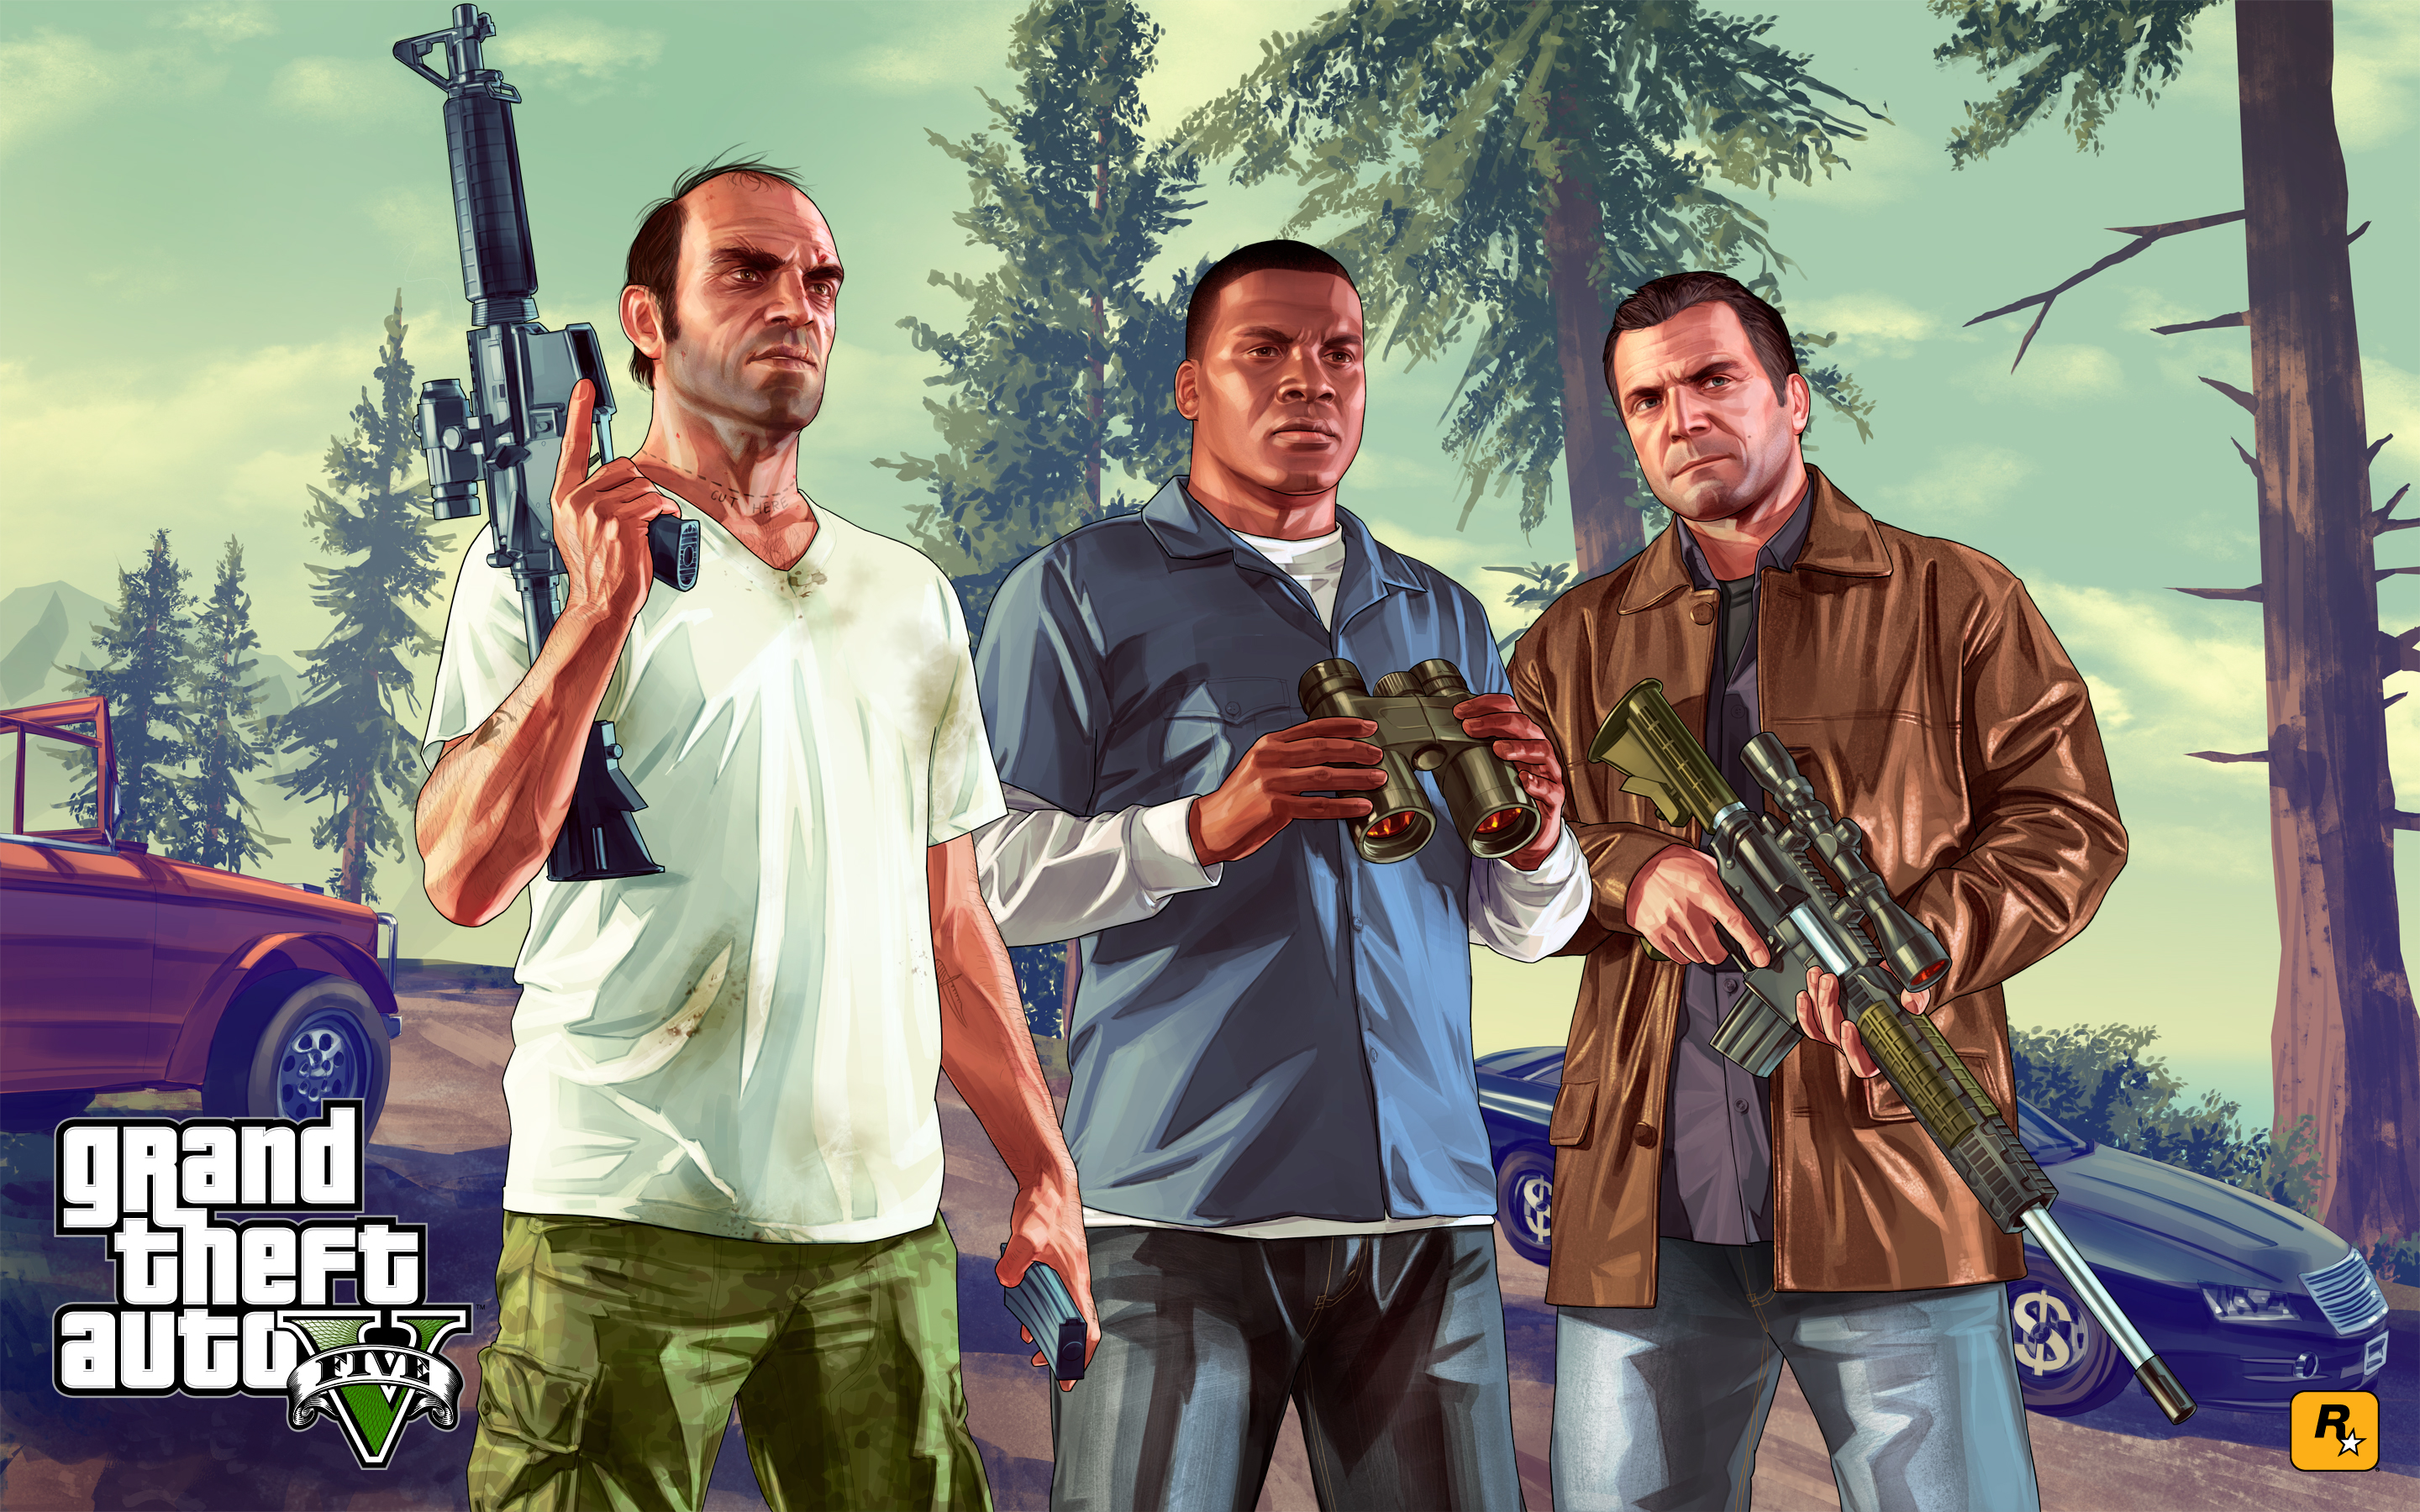 Cool GTA 5 Five Wallpaper Picture 9415 Wallpaper High Resolution 2880x1800